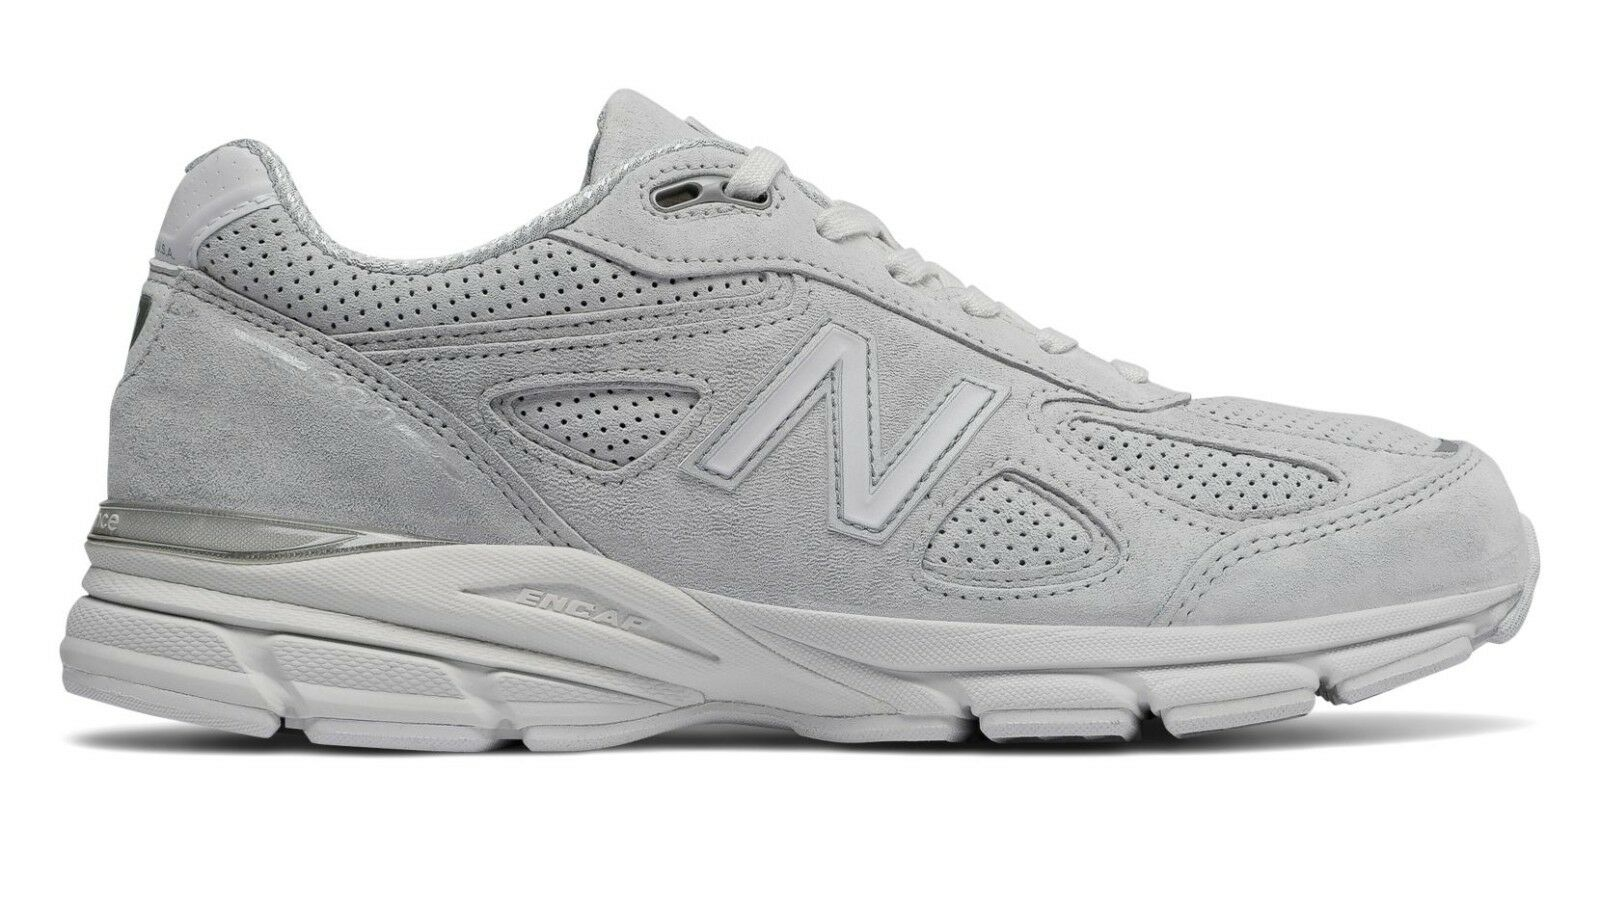 NIB New Balance MENS M990AF4 MADE 990 ARTIC FOX GREY MADE M990AF4 IN USA RUNNING SNEAKERS e9b86a